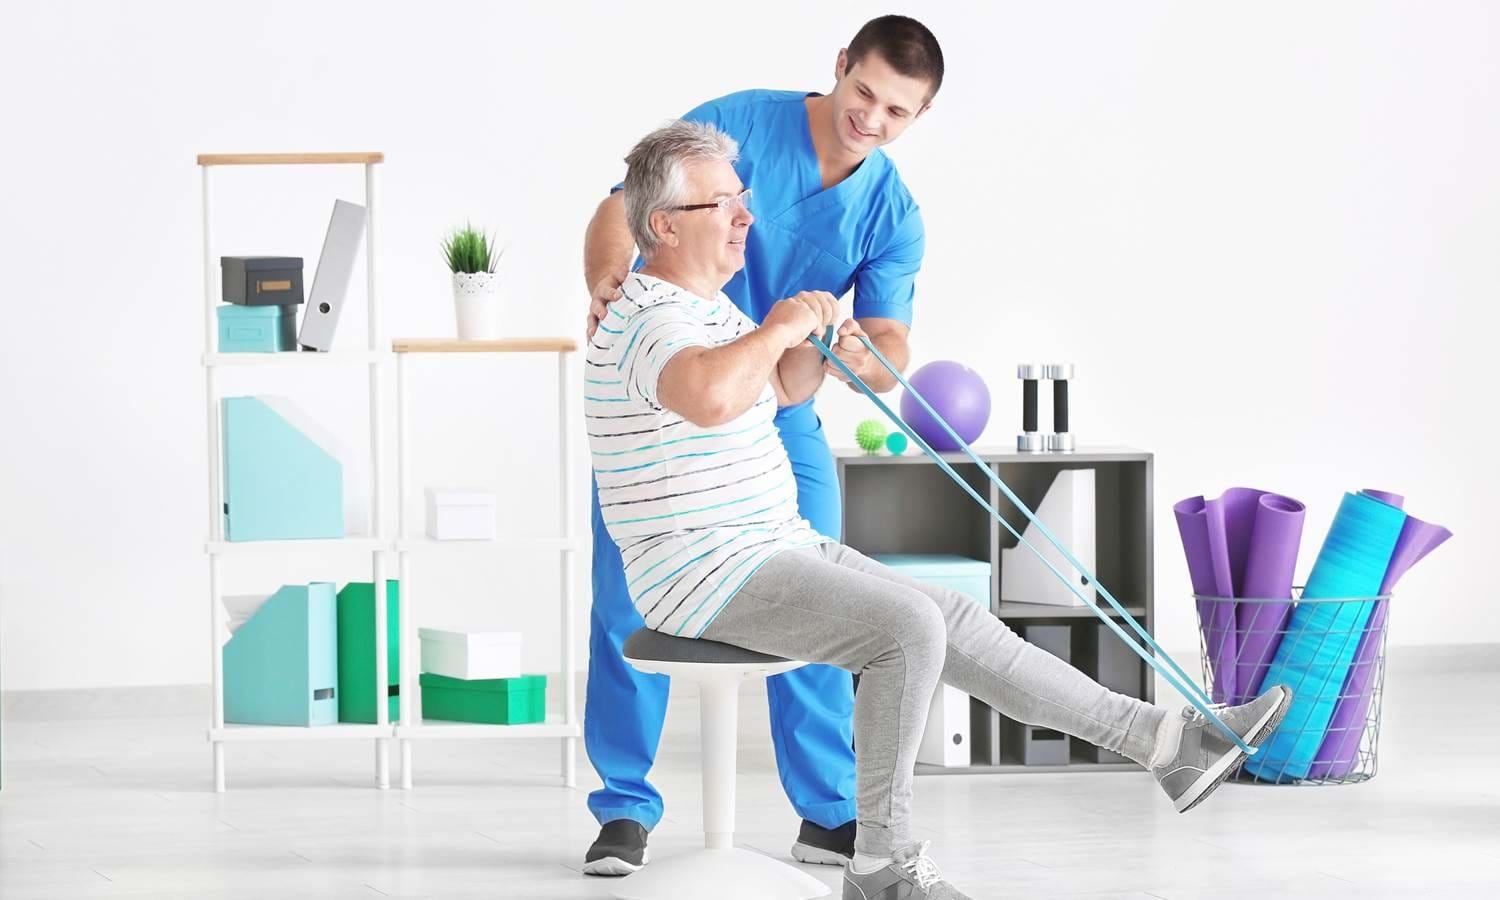 Medifit Physiotherapy and Wellness